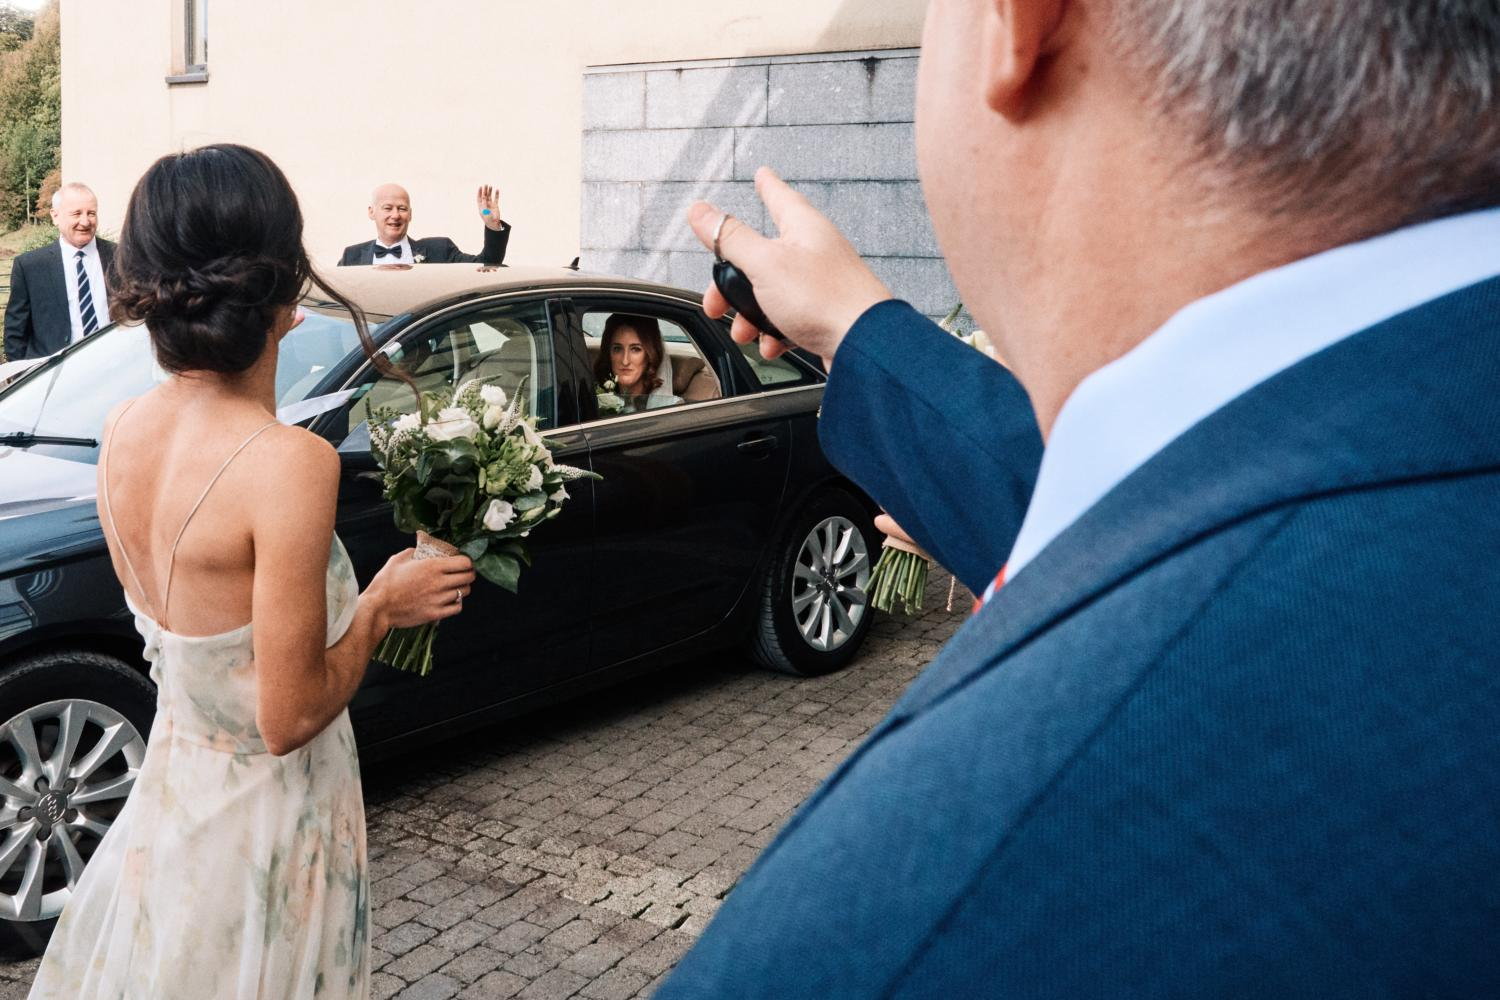 A bride and father leave for a wedding in a black car